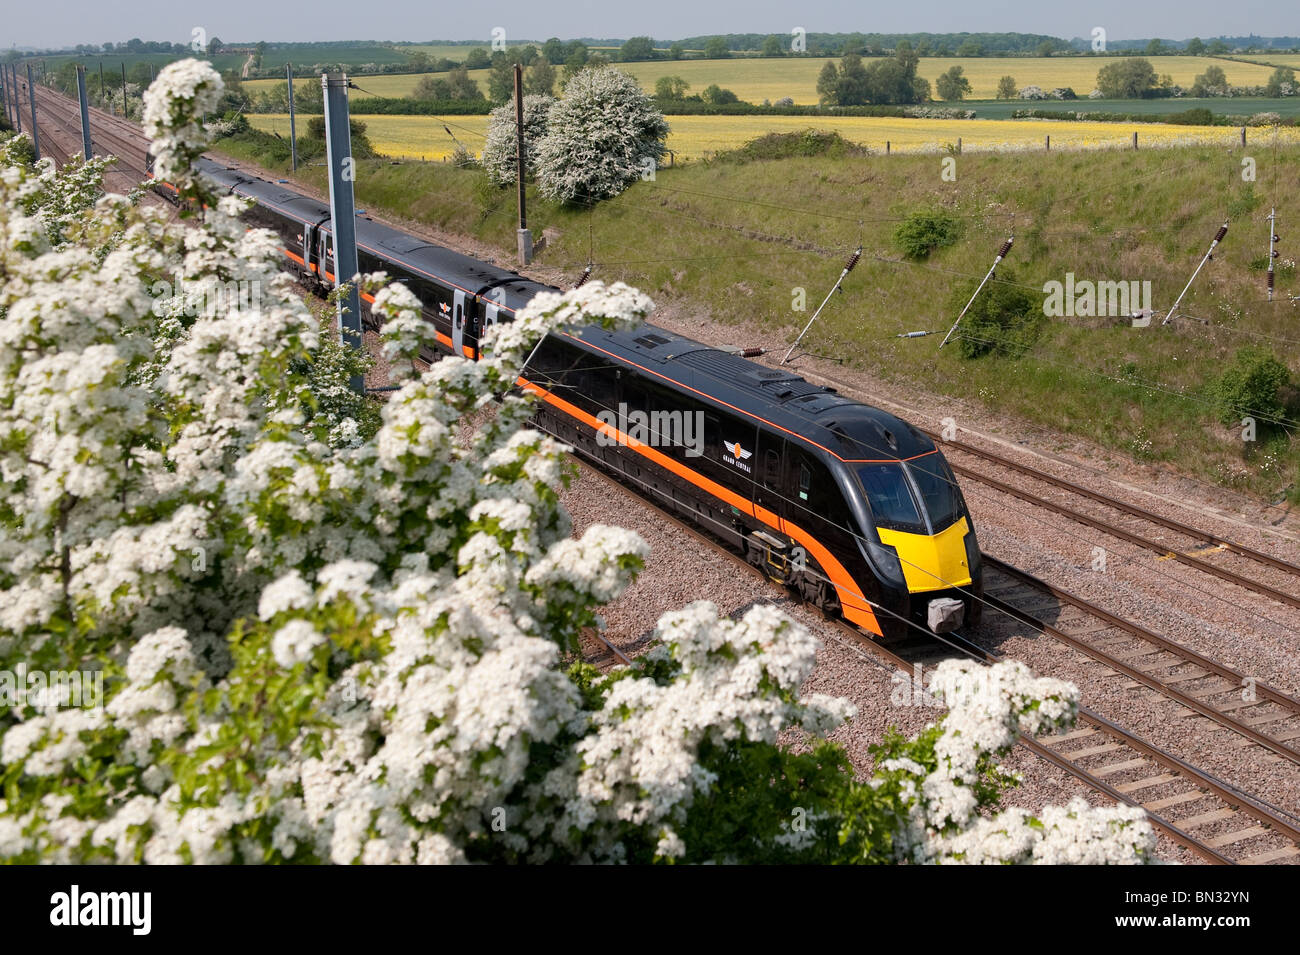 Grand Central railway's passenger train class 180 travelling at speed through the english countryside. - Stock Image